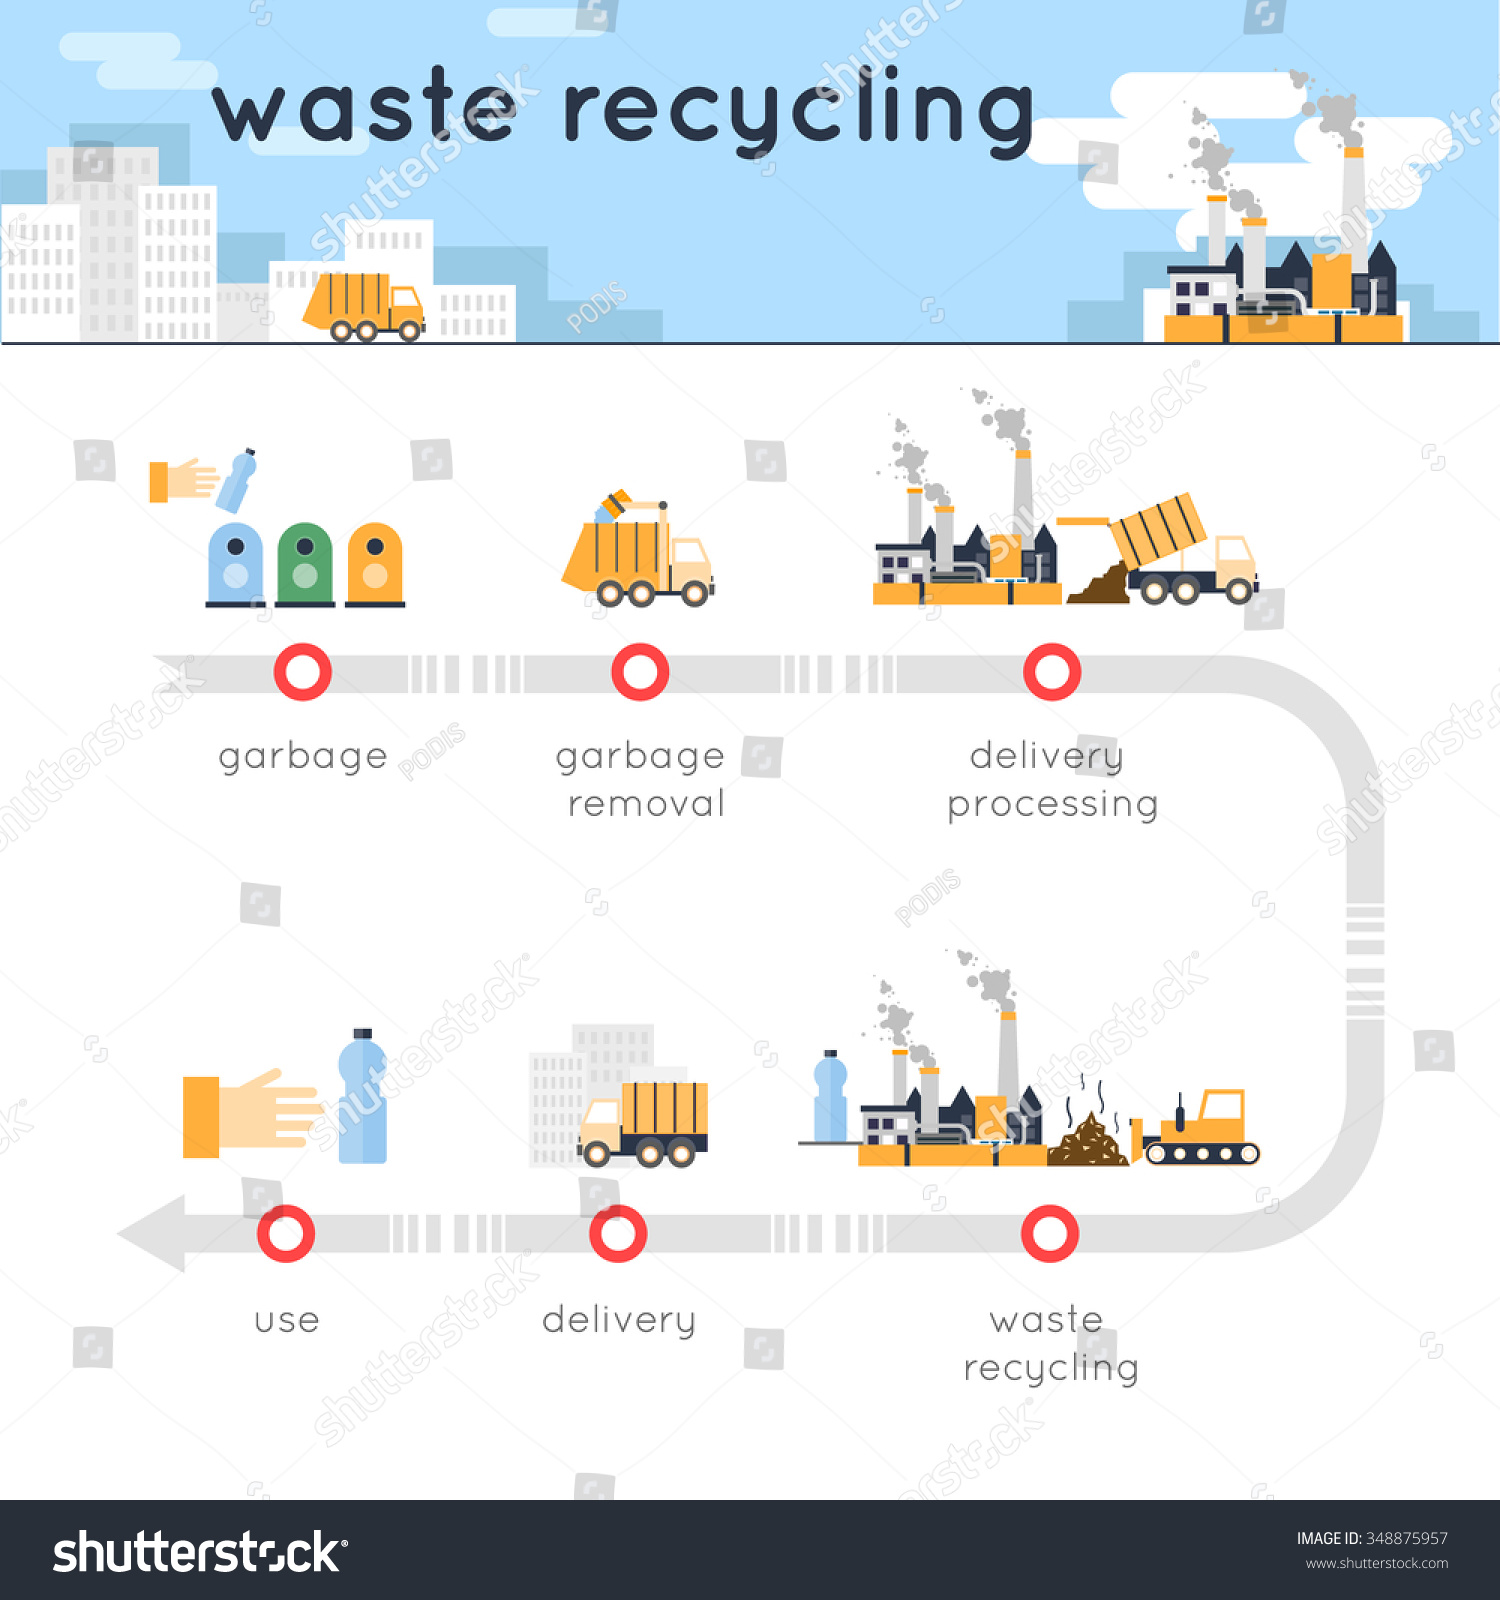 Garbage collection waste recycling waste segregation collection info-graphics Flat design vector illustration